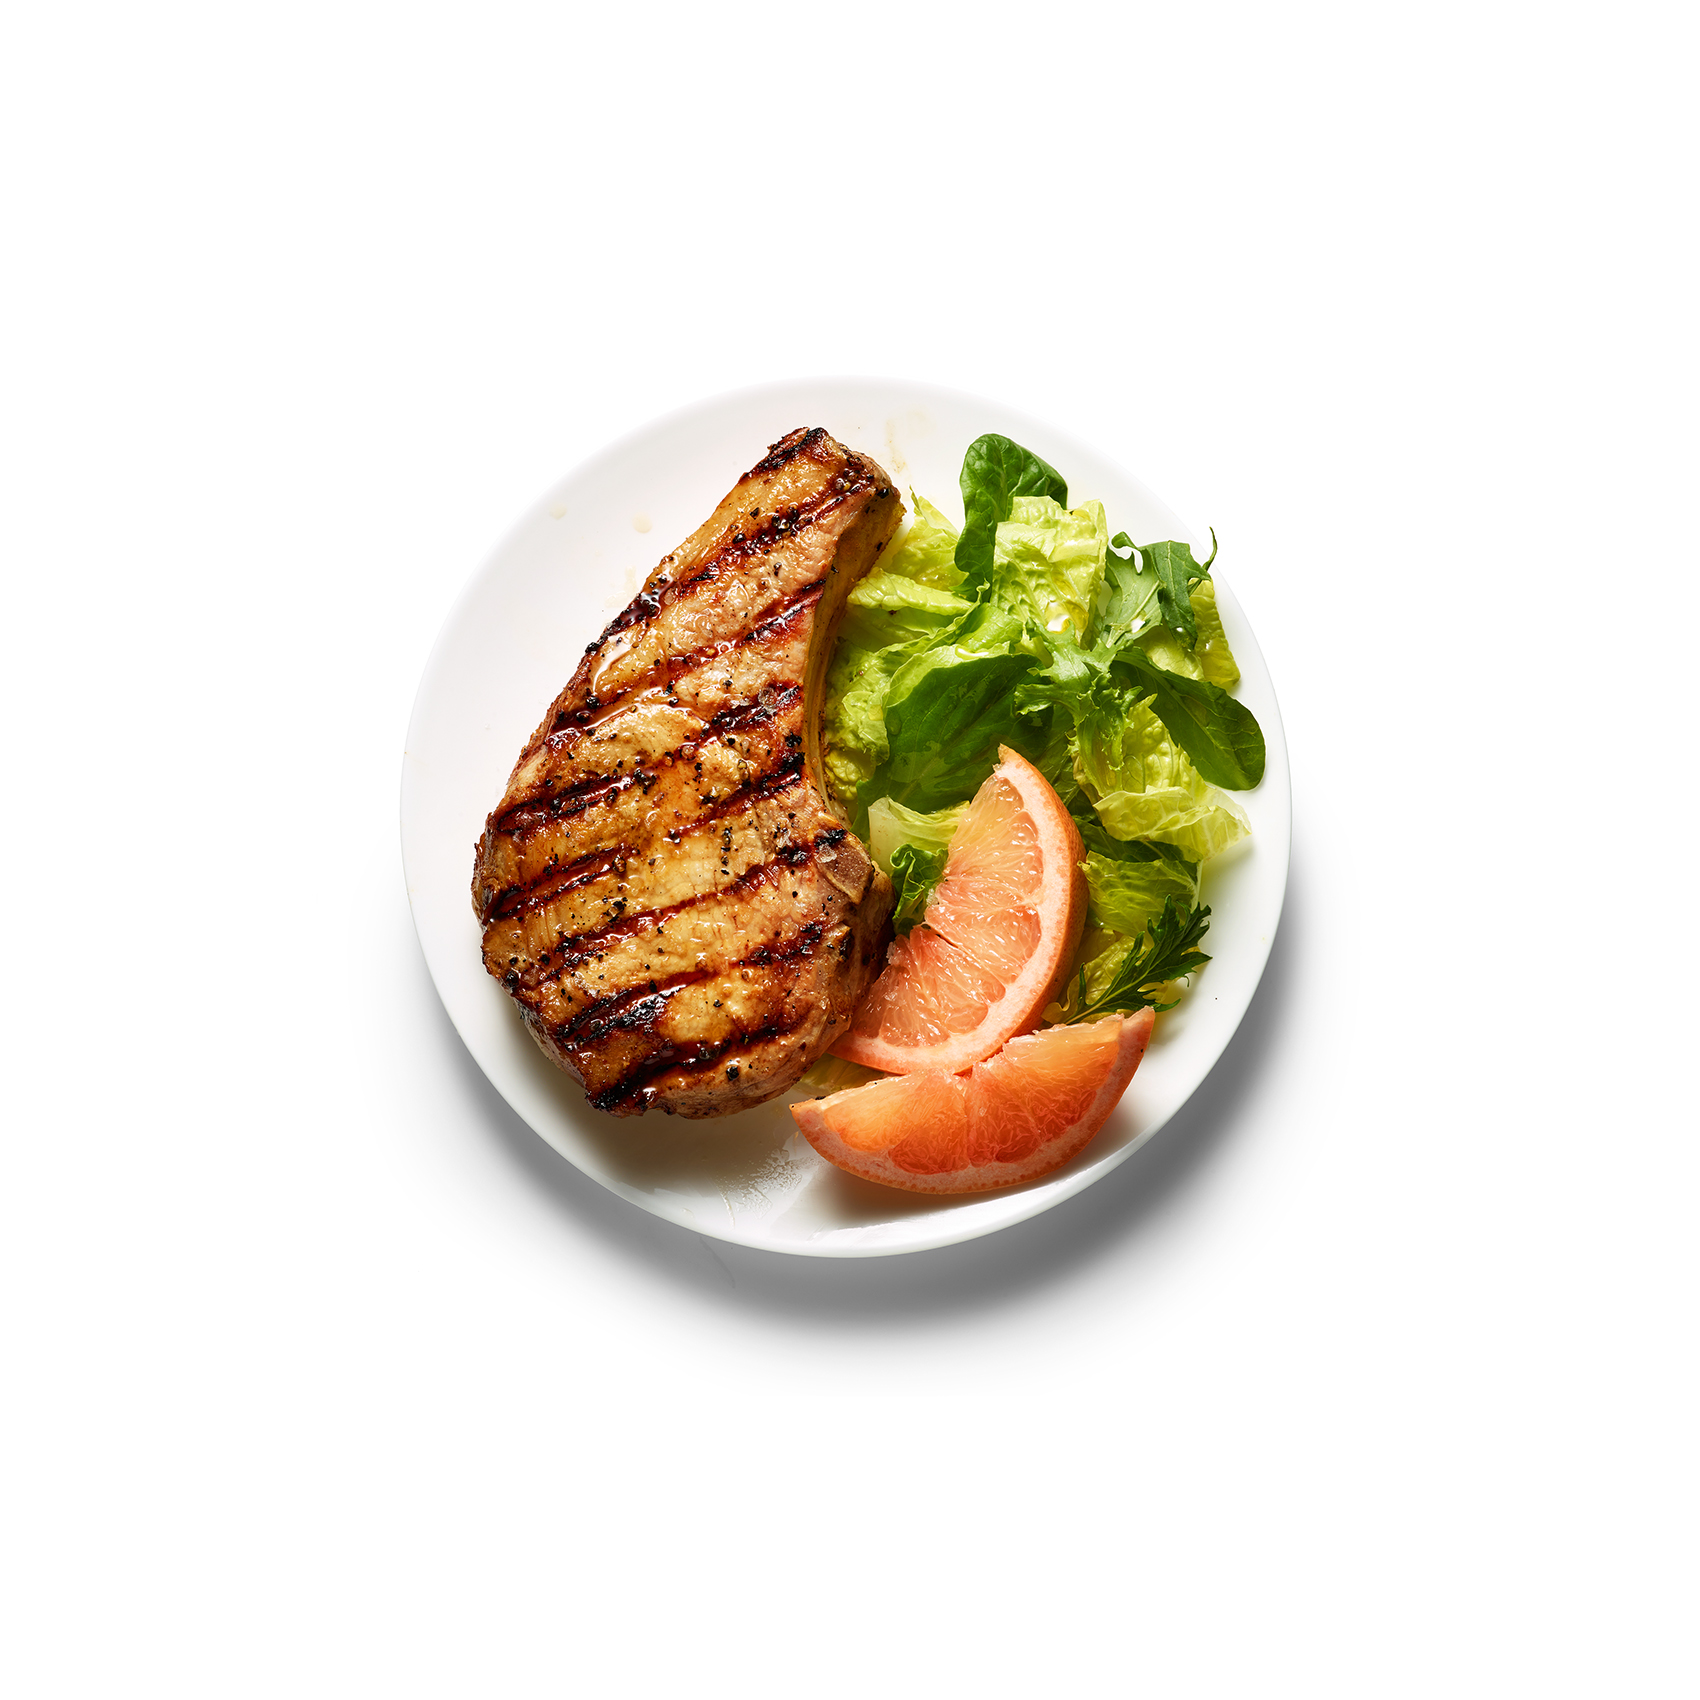 Grapefruit-Glazed Pork Chops